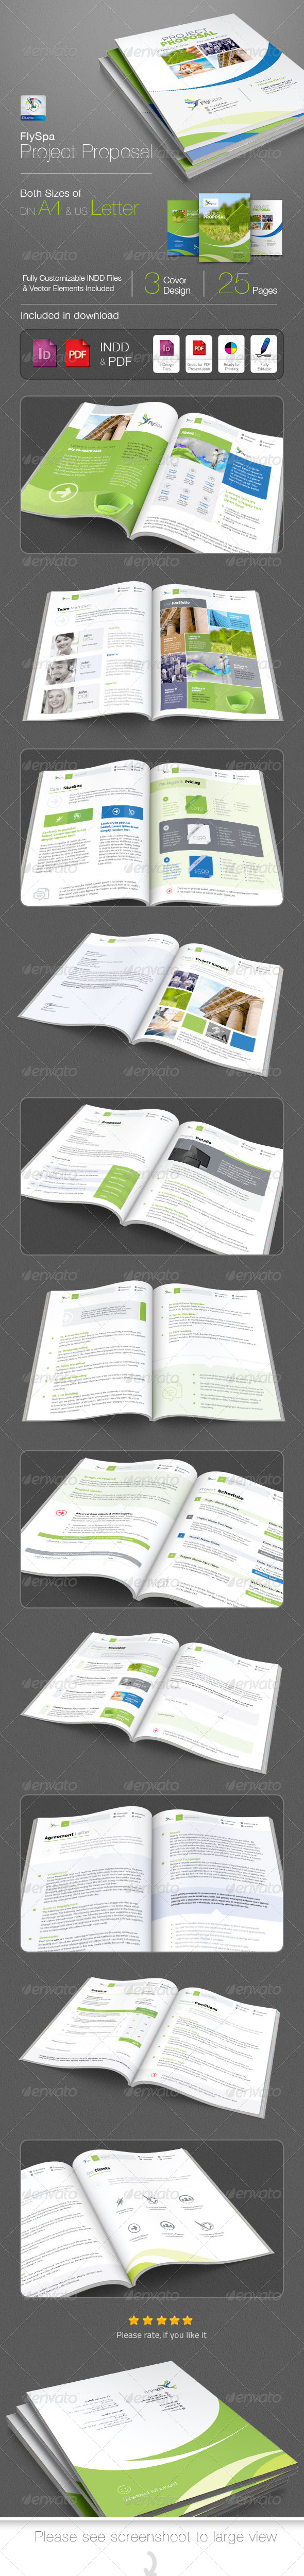 GraphicRiver FlySpa Project Proposal 5420297